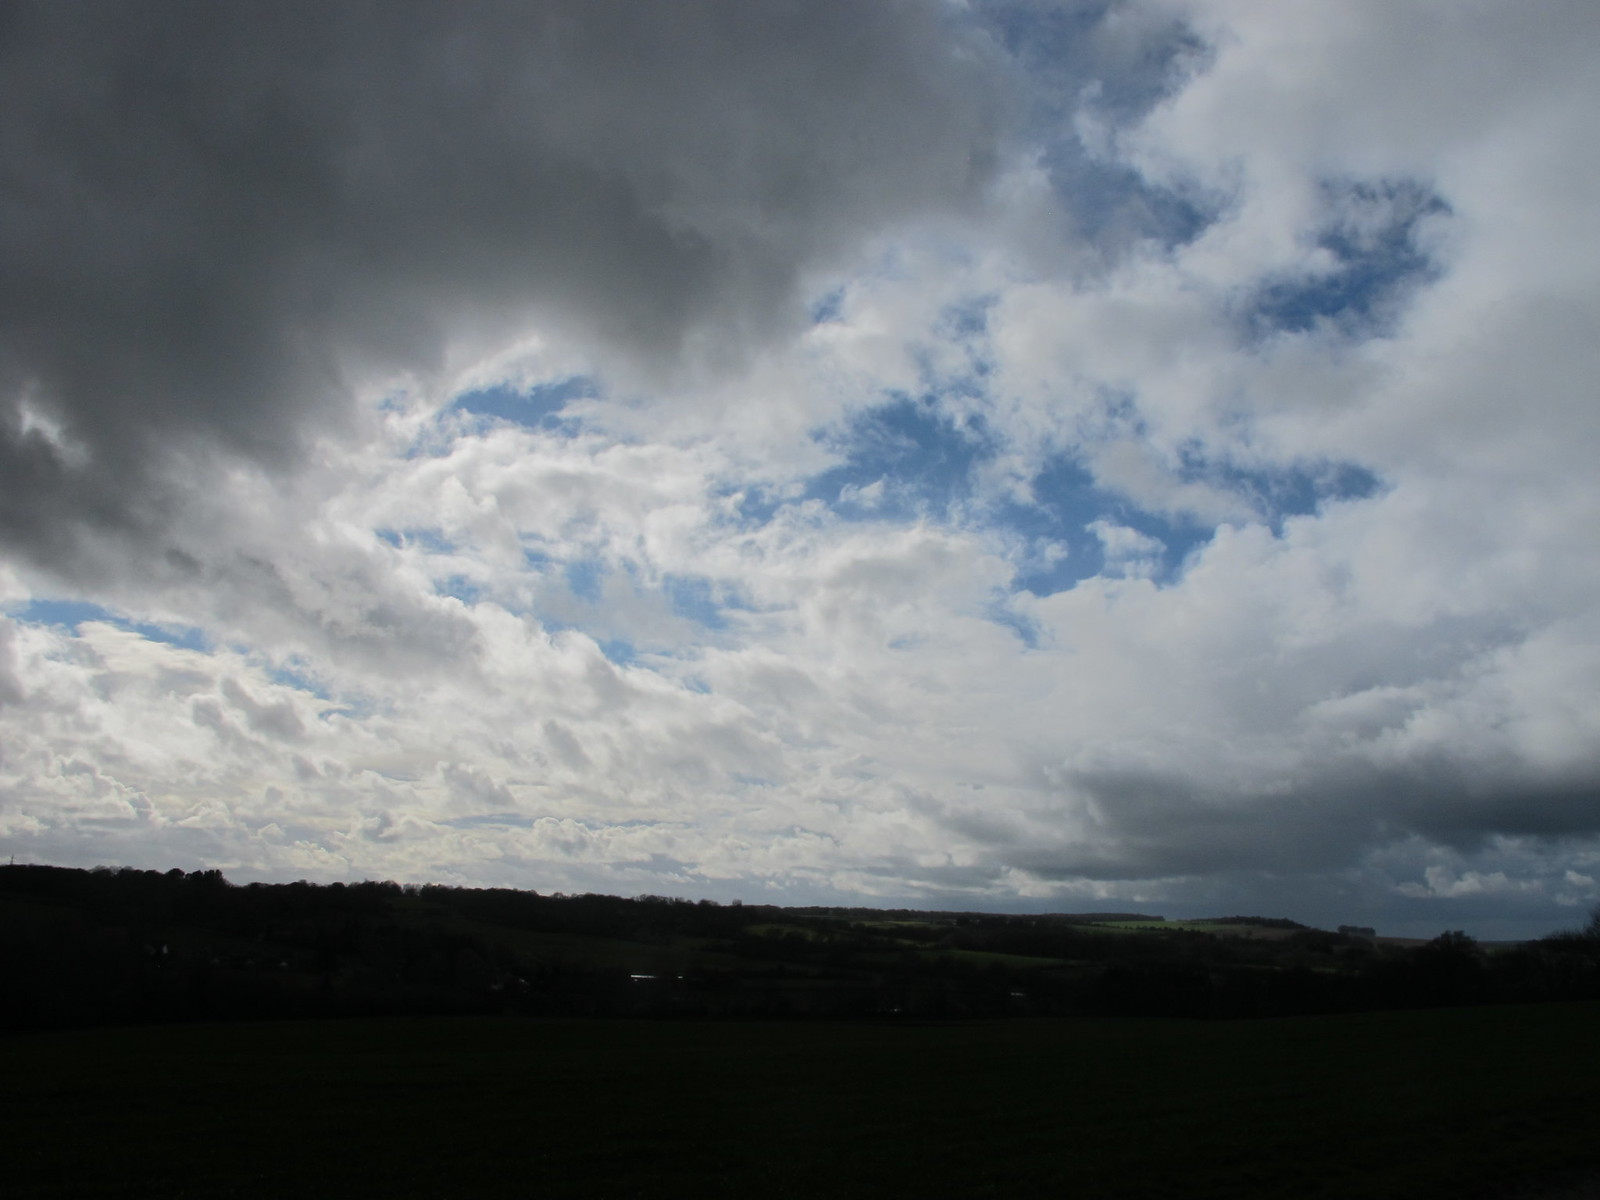 Cloudscape, near Mount Farm SWC Walk 58 Mottisfont and Dunbridge to Romsey taken by Karen C.